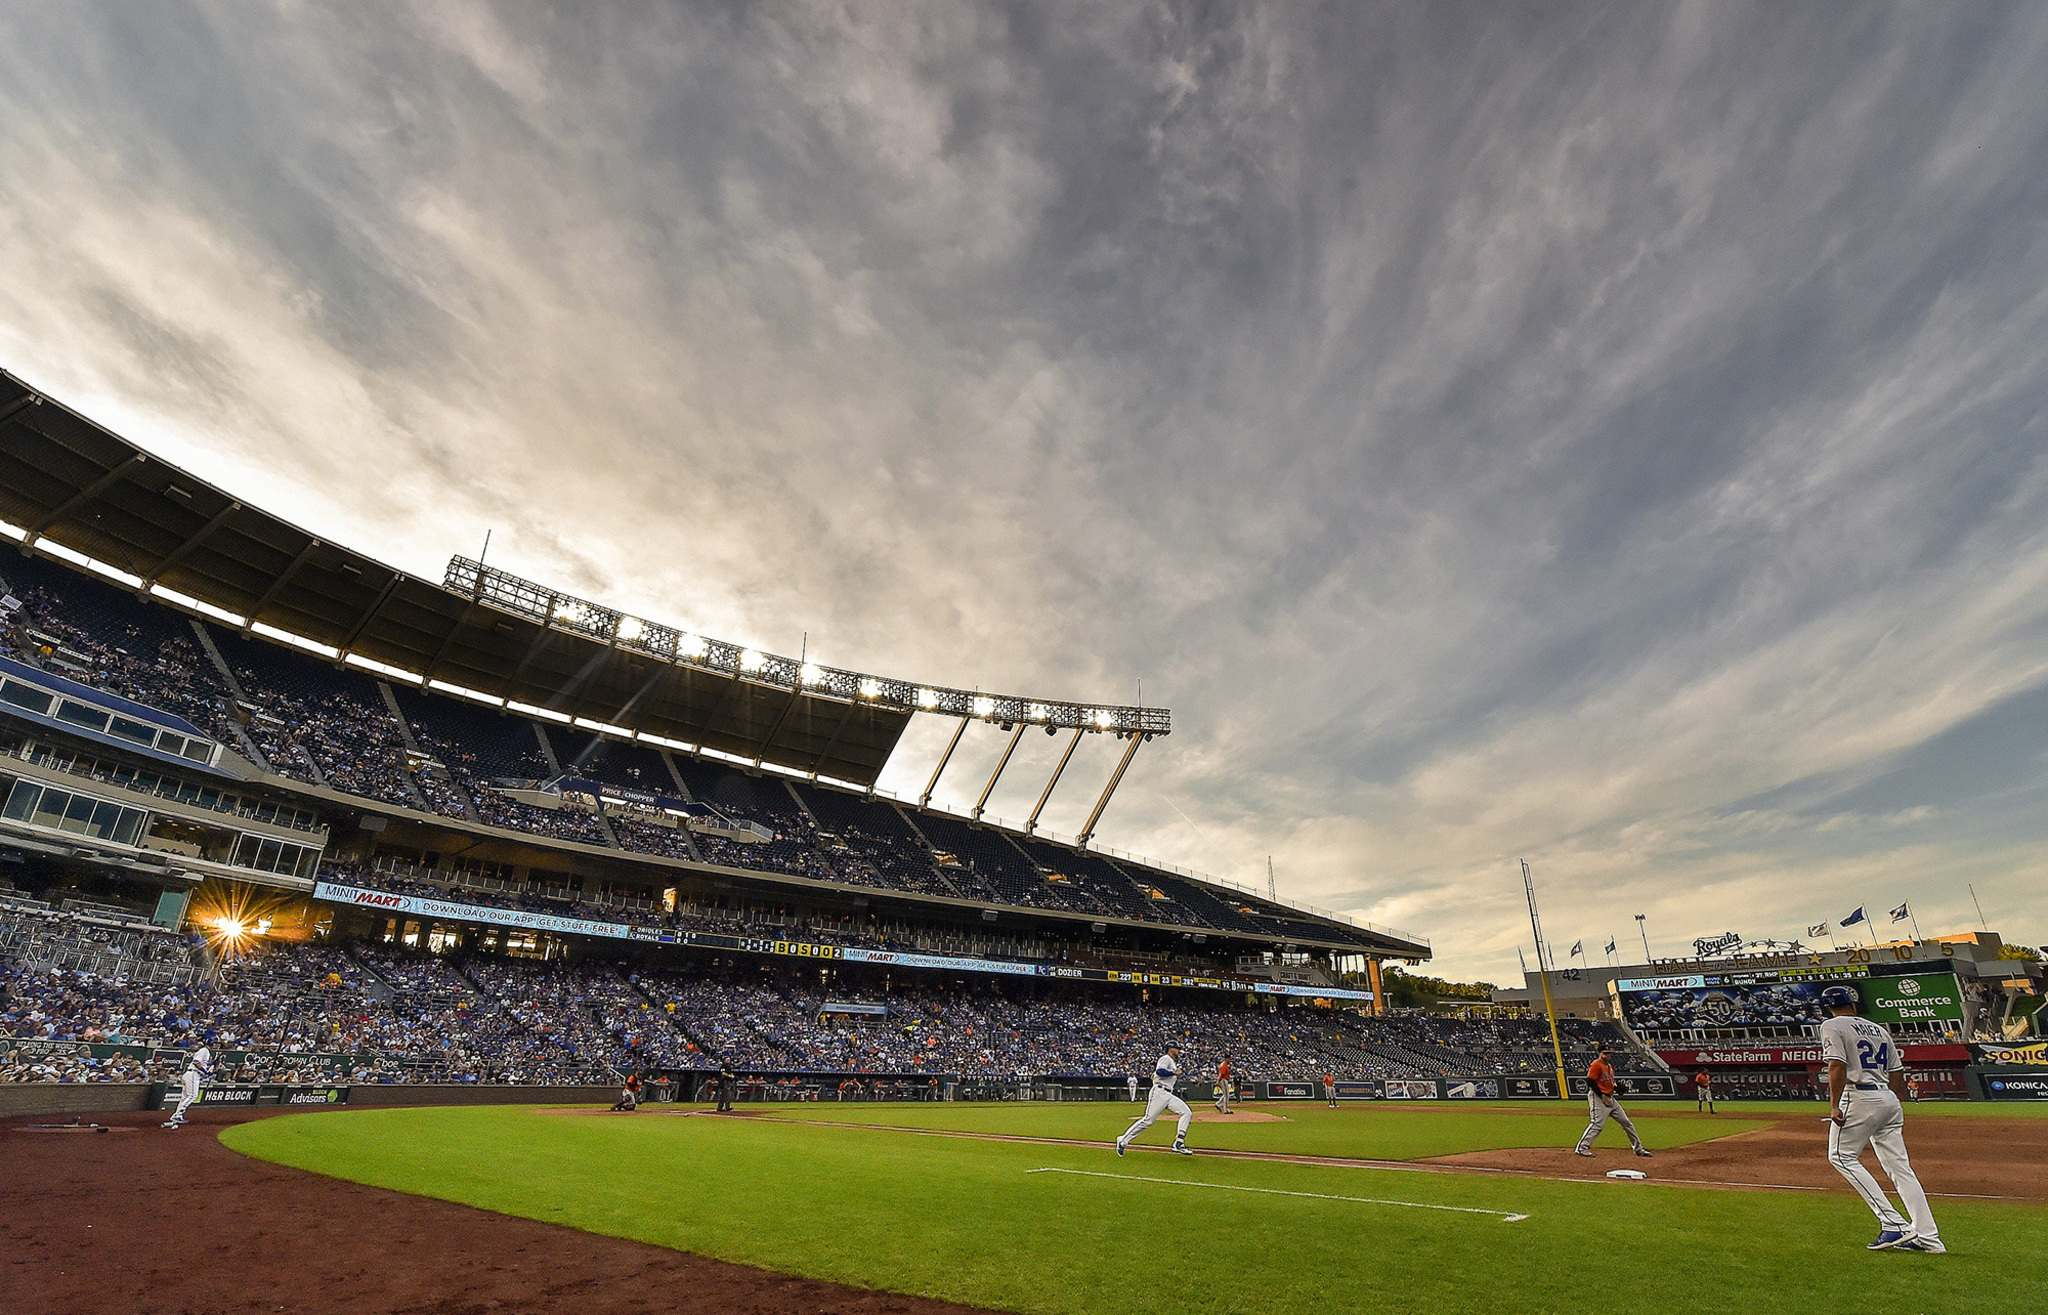 The Kansas City Royals, bought for US$96 million in 2000, were sold for US$1 billion last year.